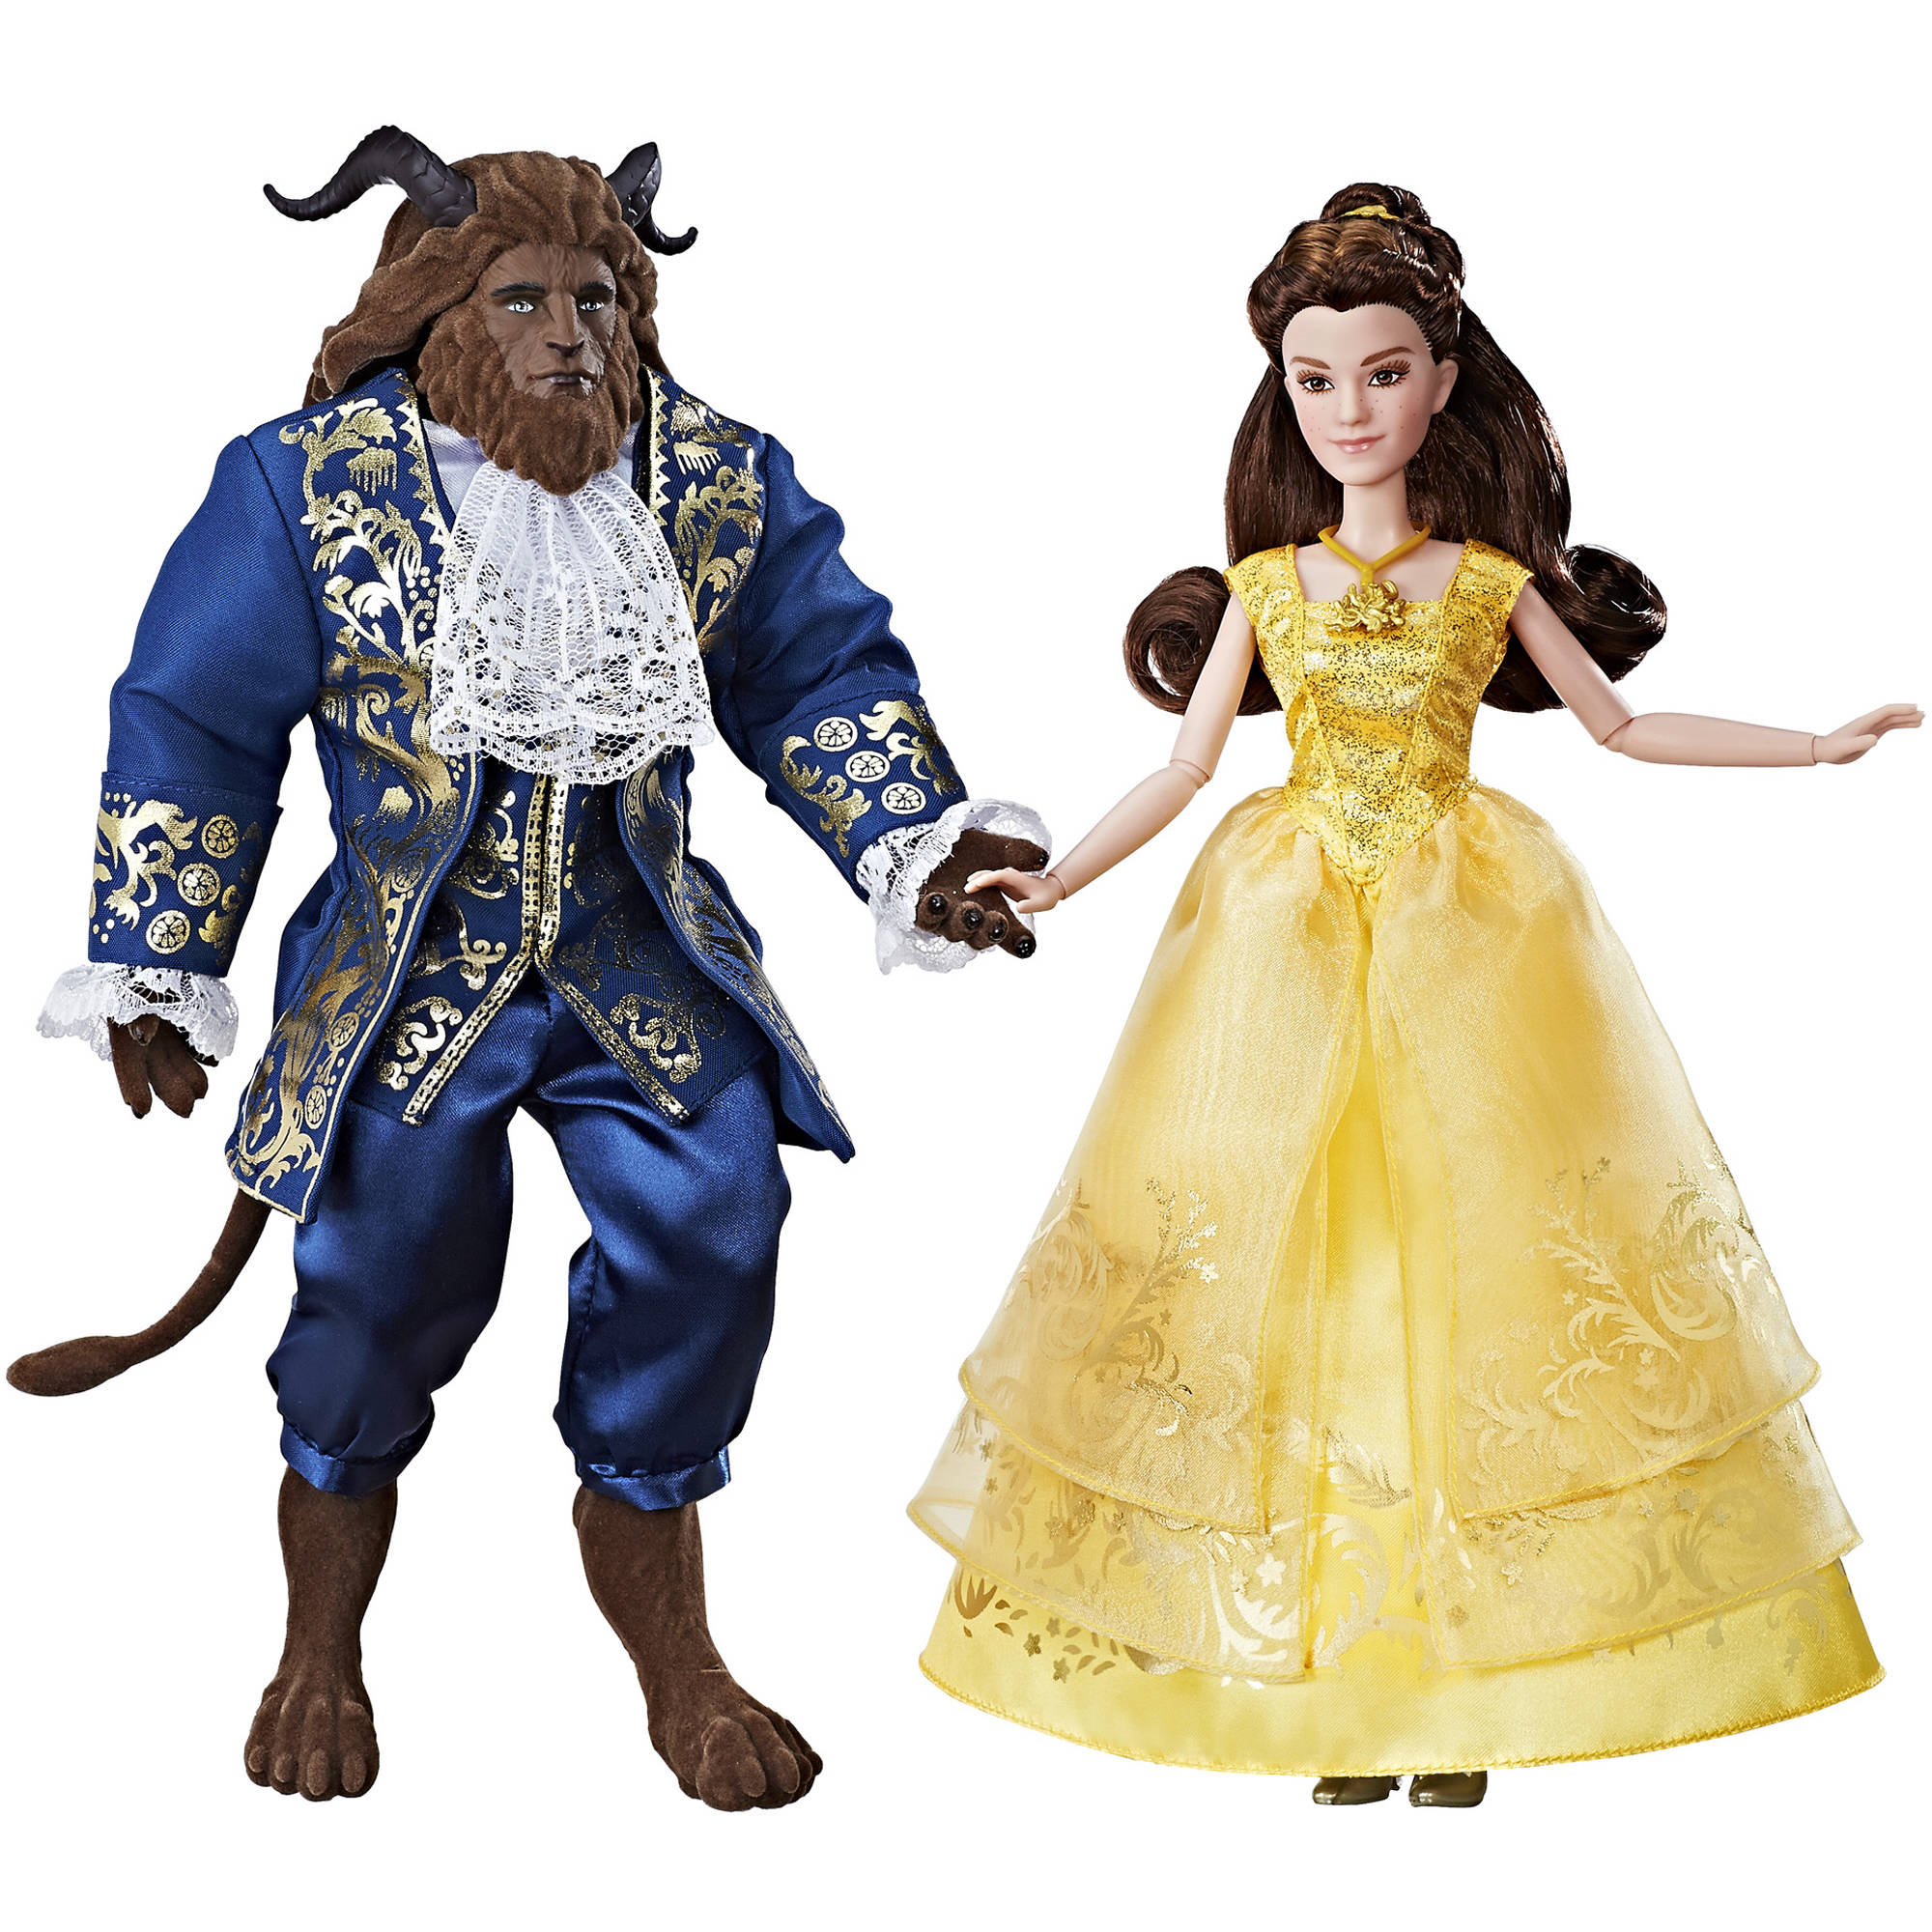 Disney Beauty and the Beast Grand Romance by Hasbro